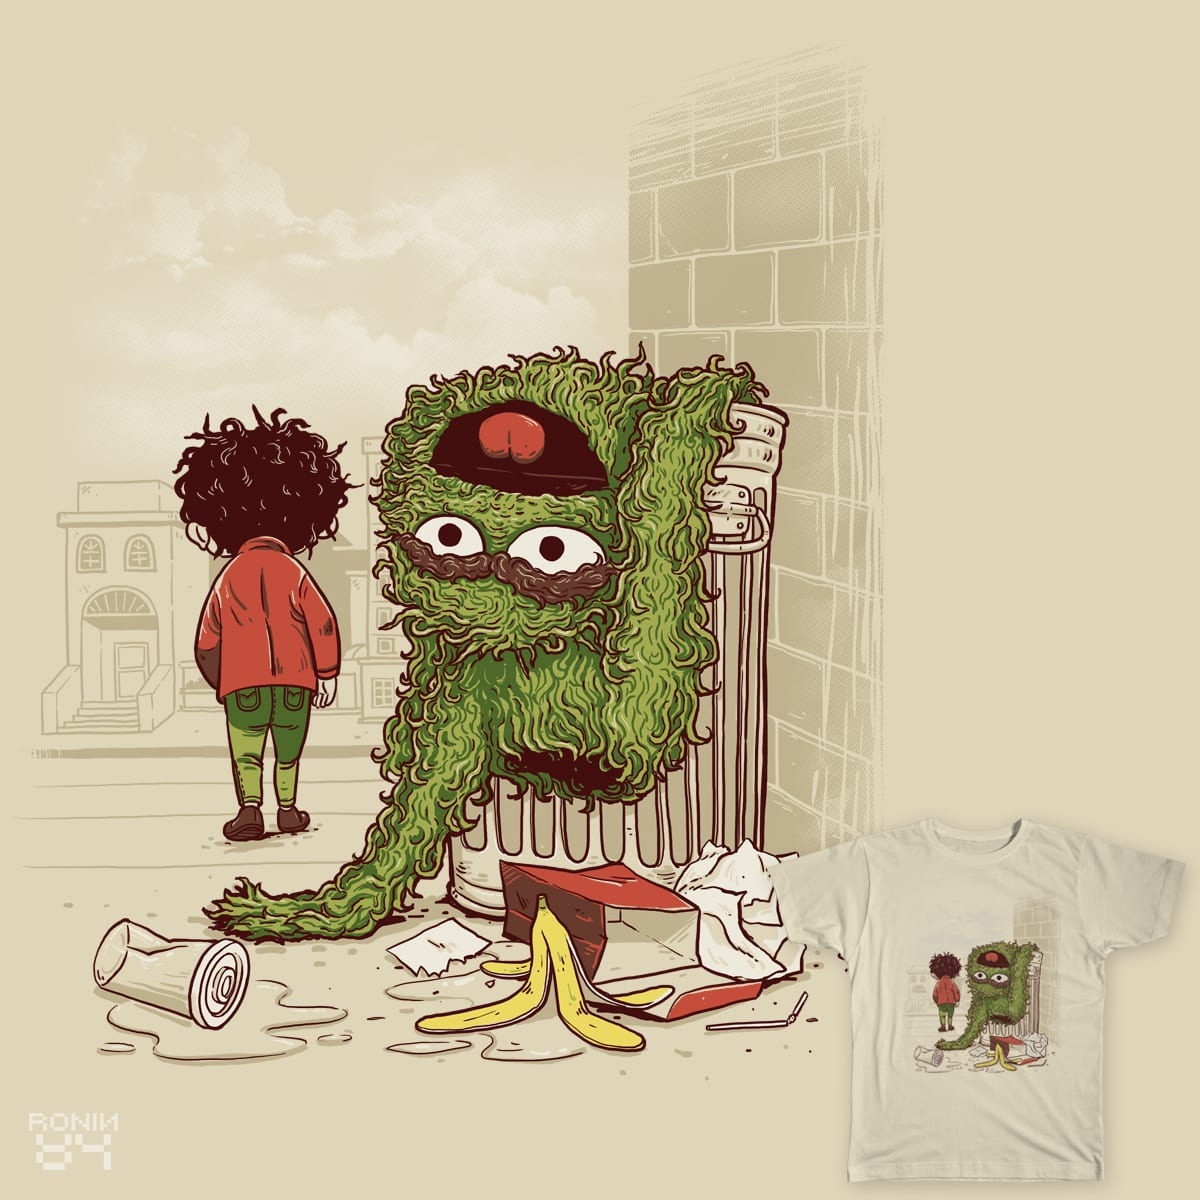 put away the toys..and become a man. by ronin84 on Threadless